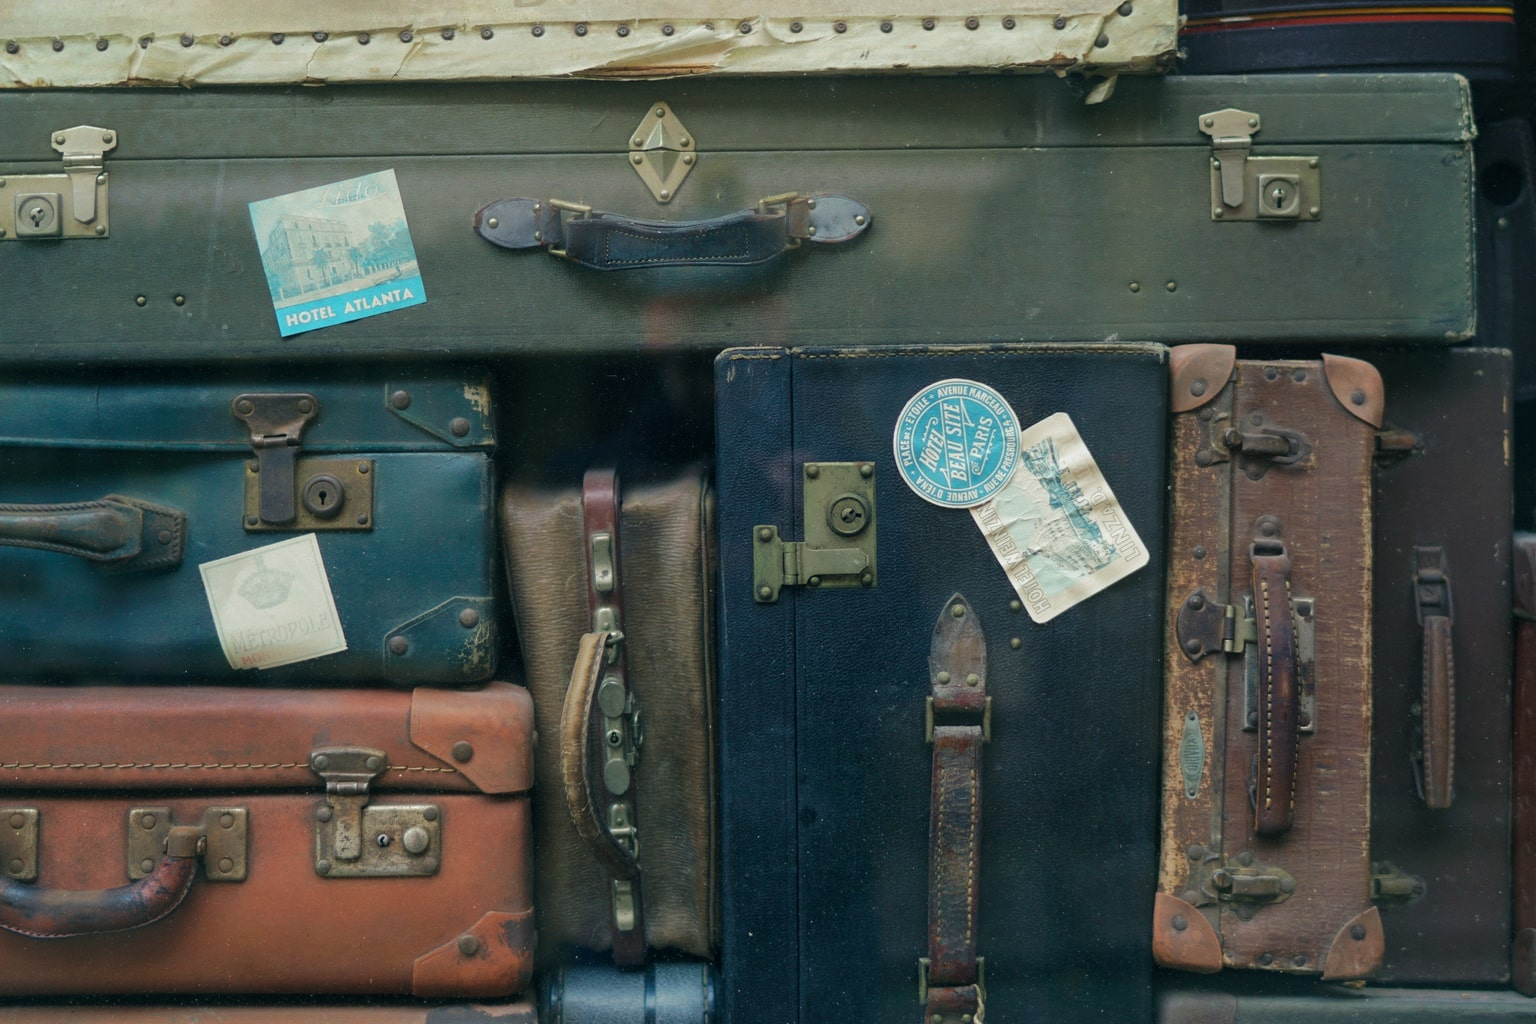 Stack of old fashioned luggage with passport stamps